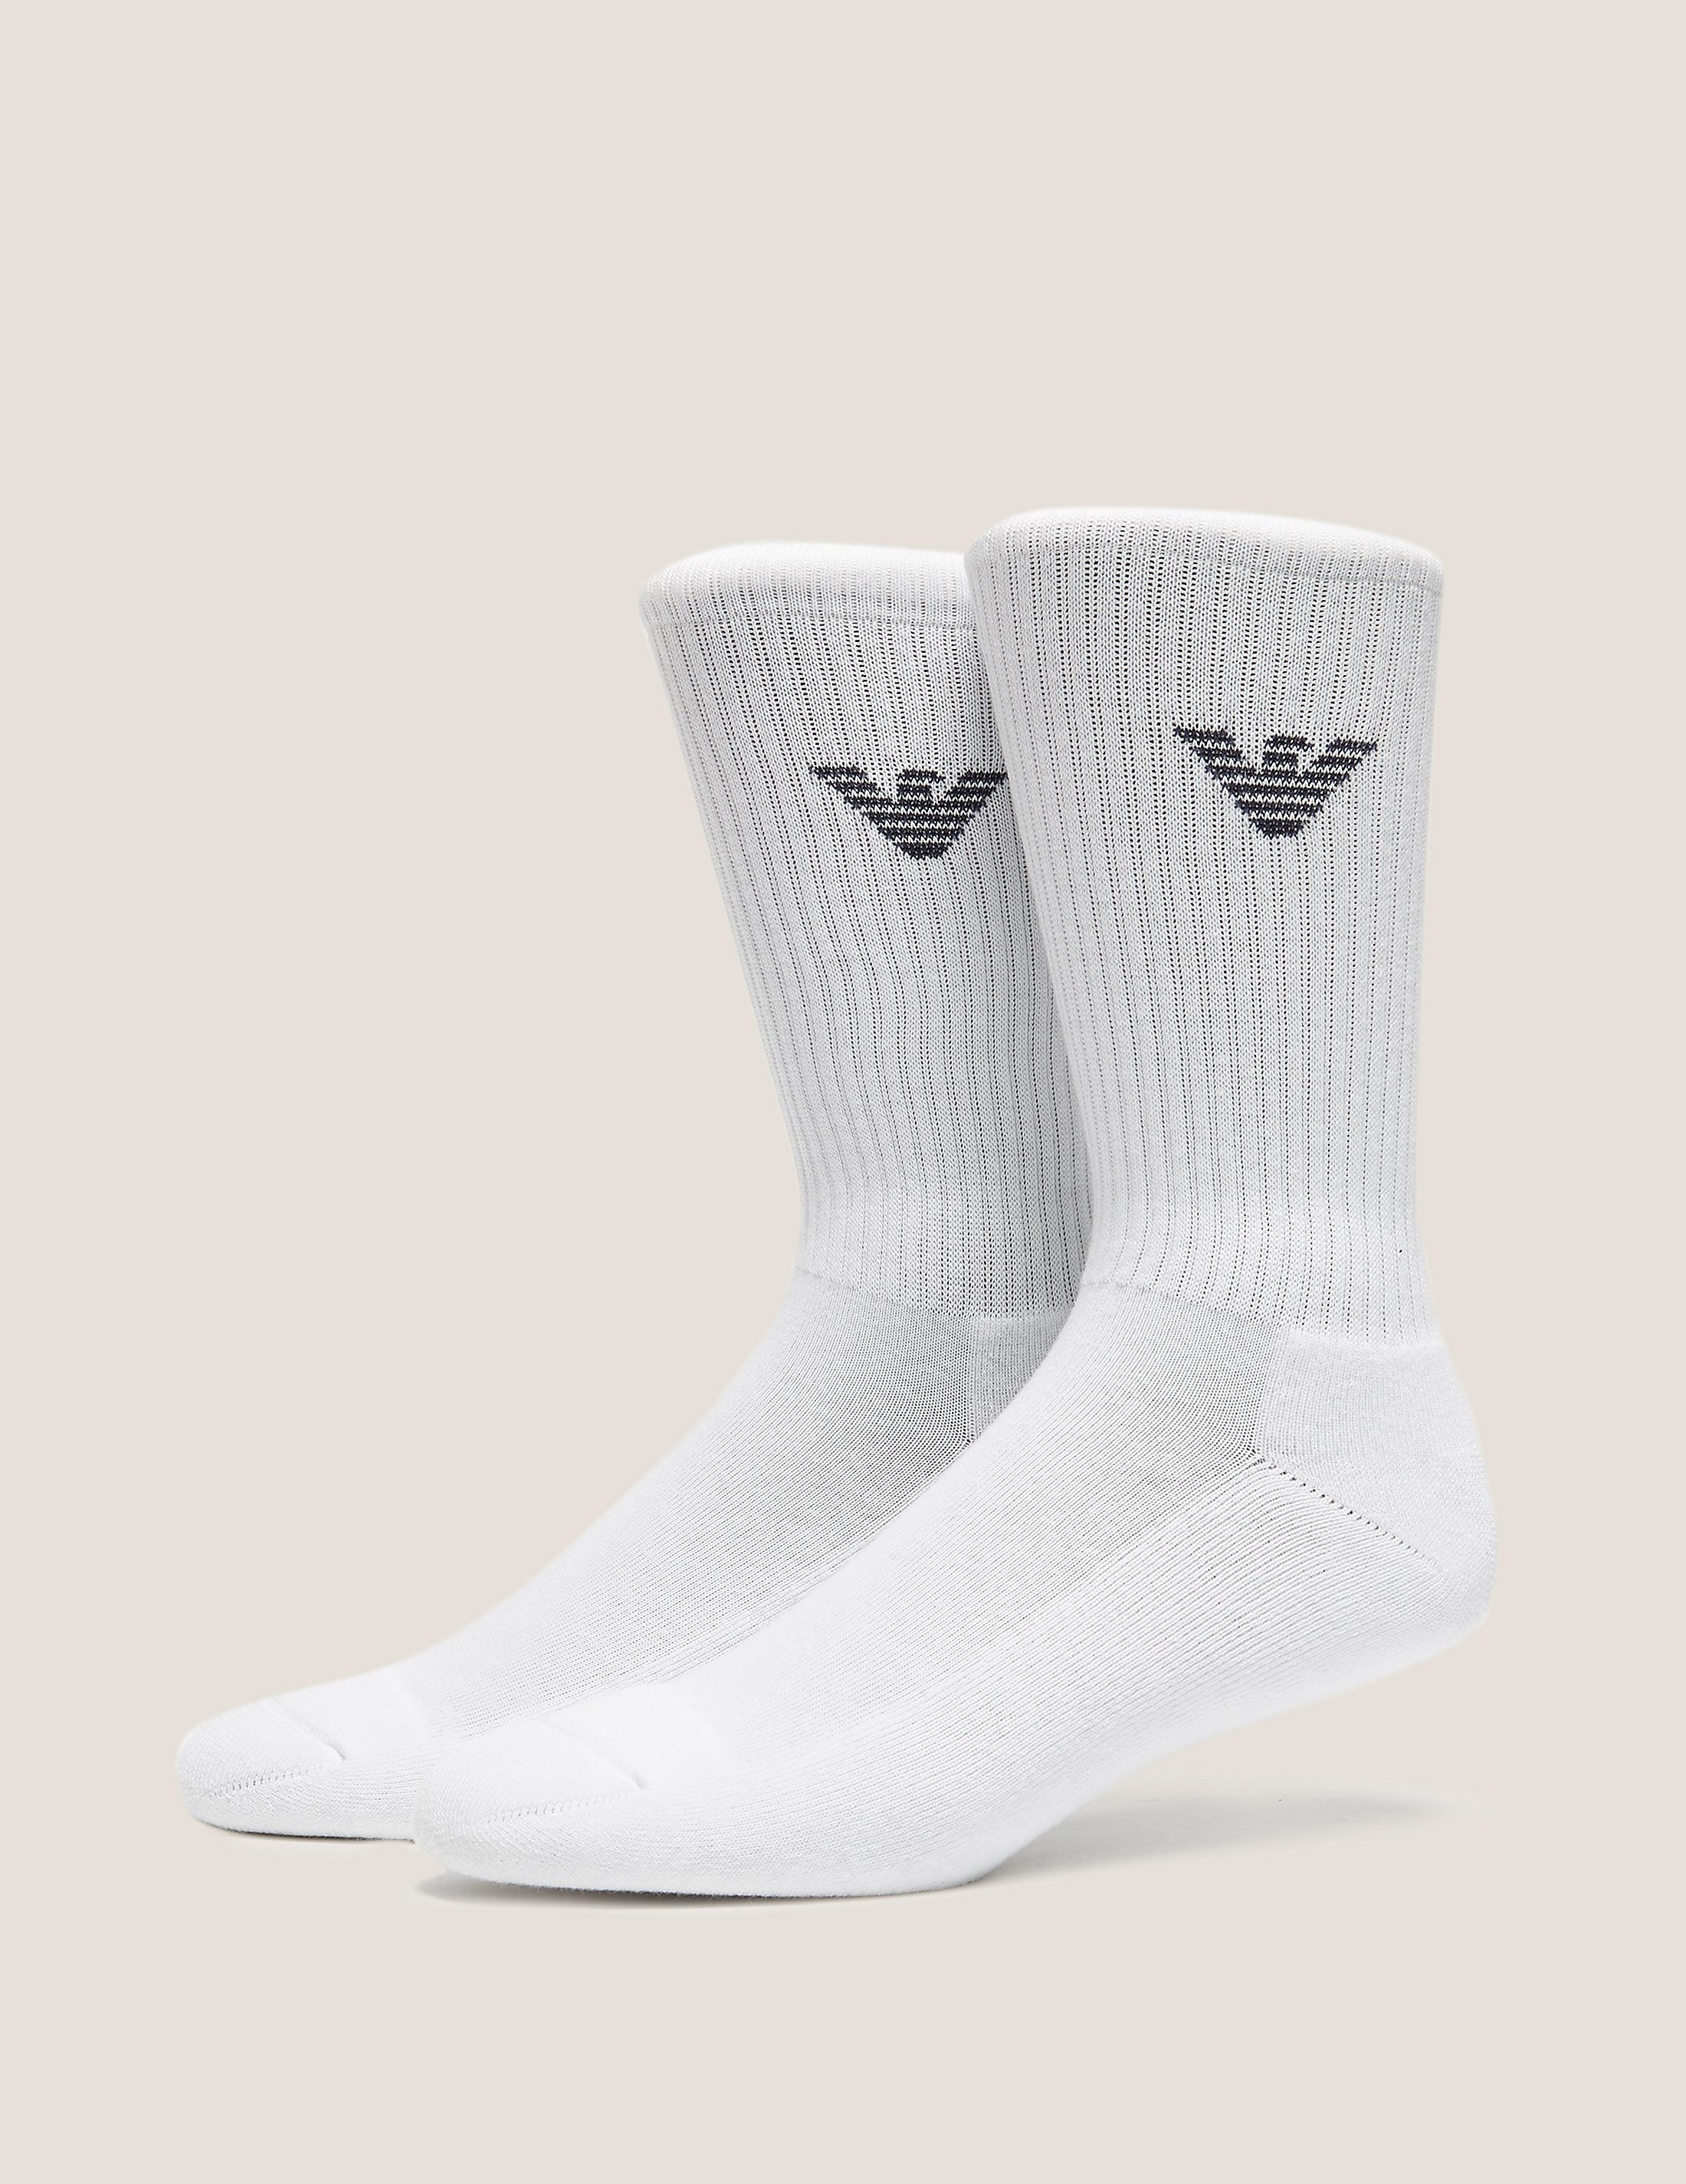 Emporio Armani 2 Pack Eagle Socks